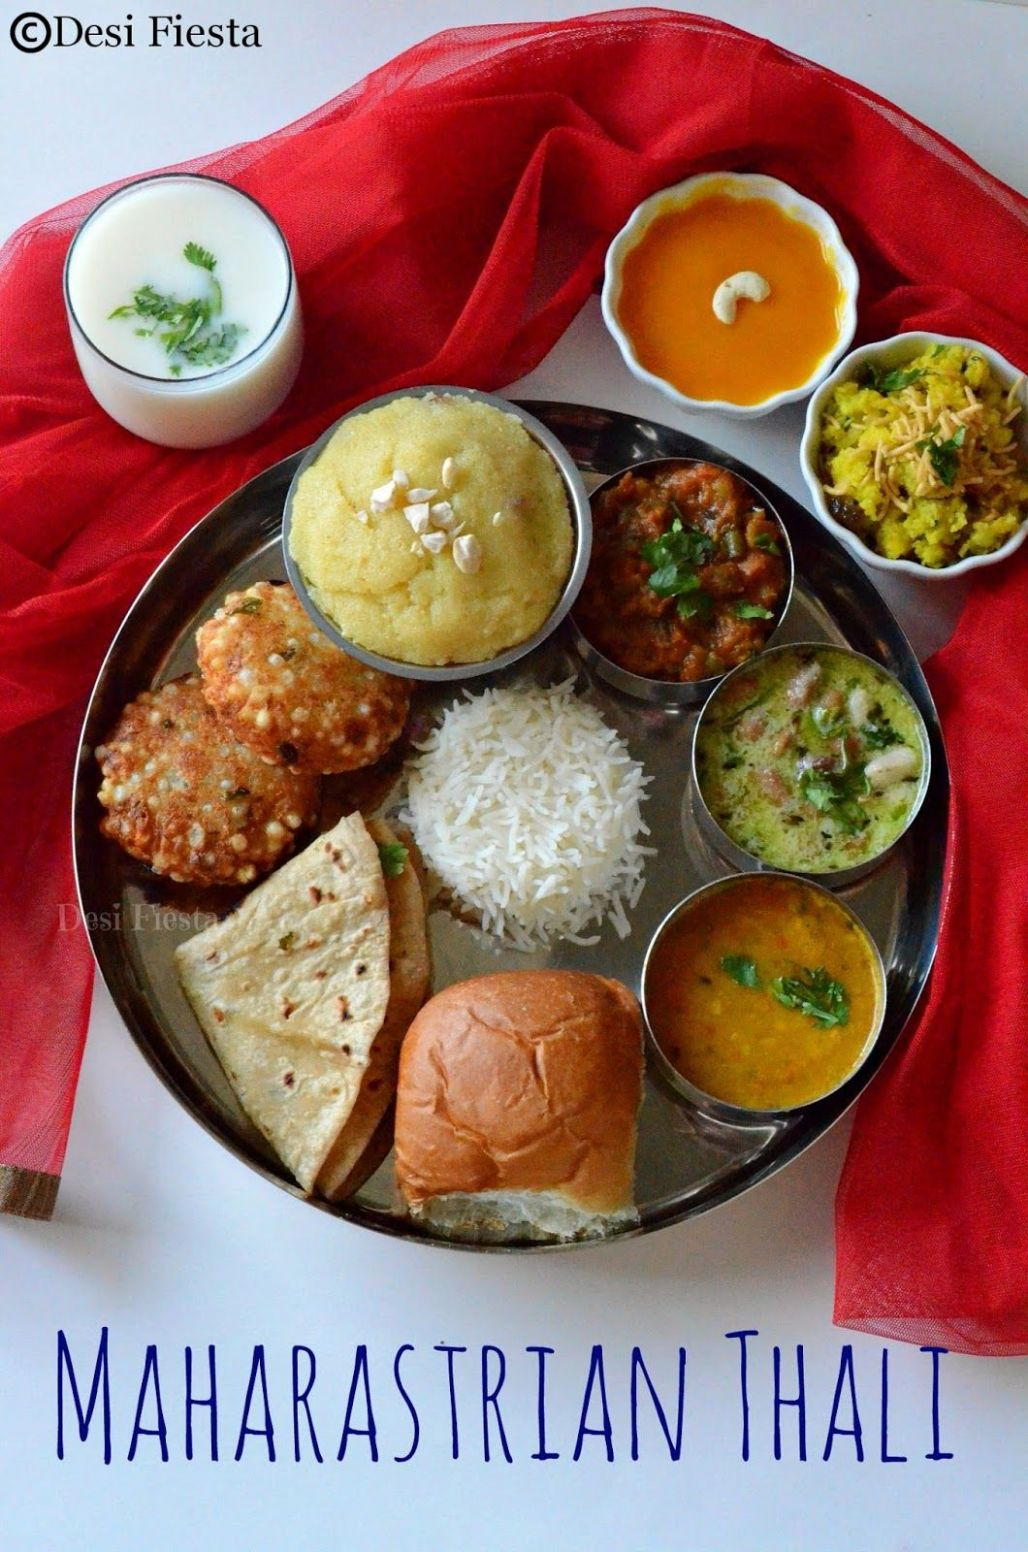 Maharastrian Thali | Indian food recipes, Desi food, Food recipes - Food Recipes In Marathi